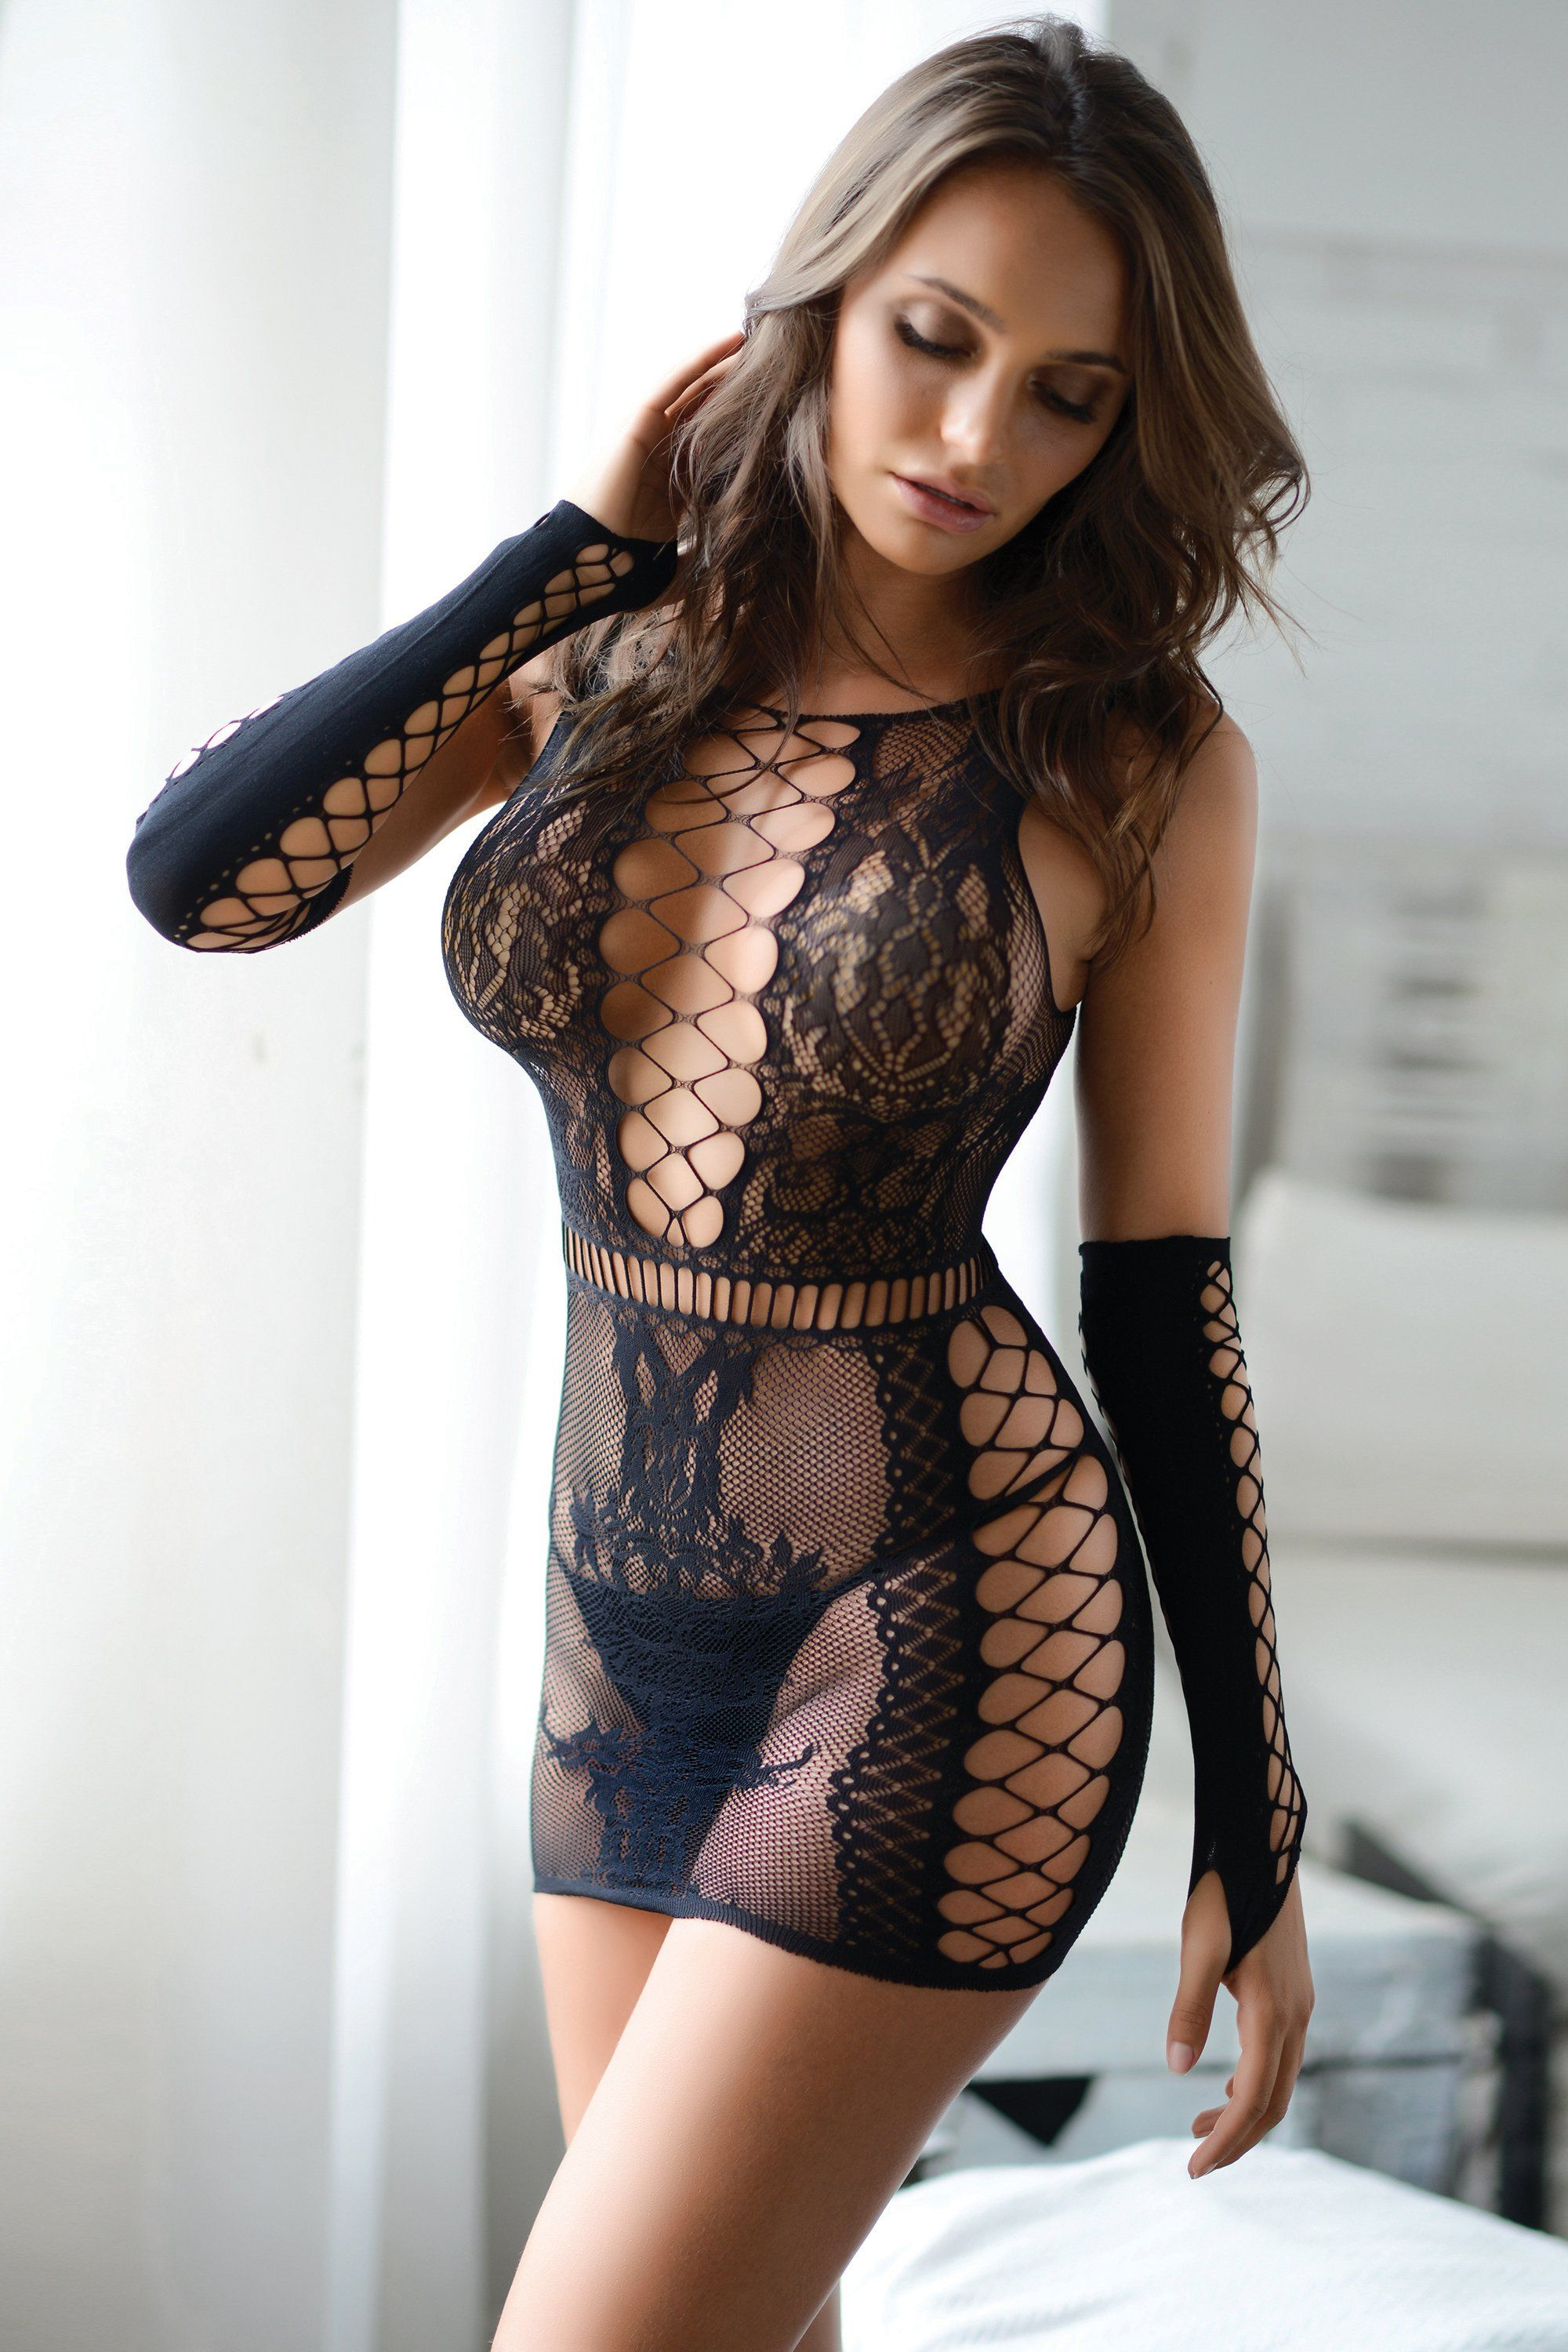 0db2149f3c1 Smoke and Mirrors Fishnet Body Stocking Dress | Lingerie in 2019 ...